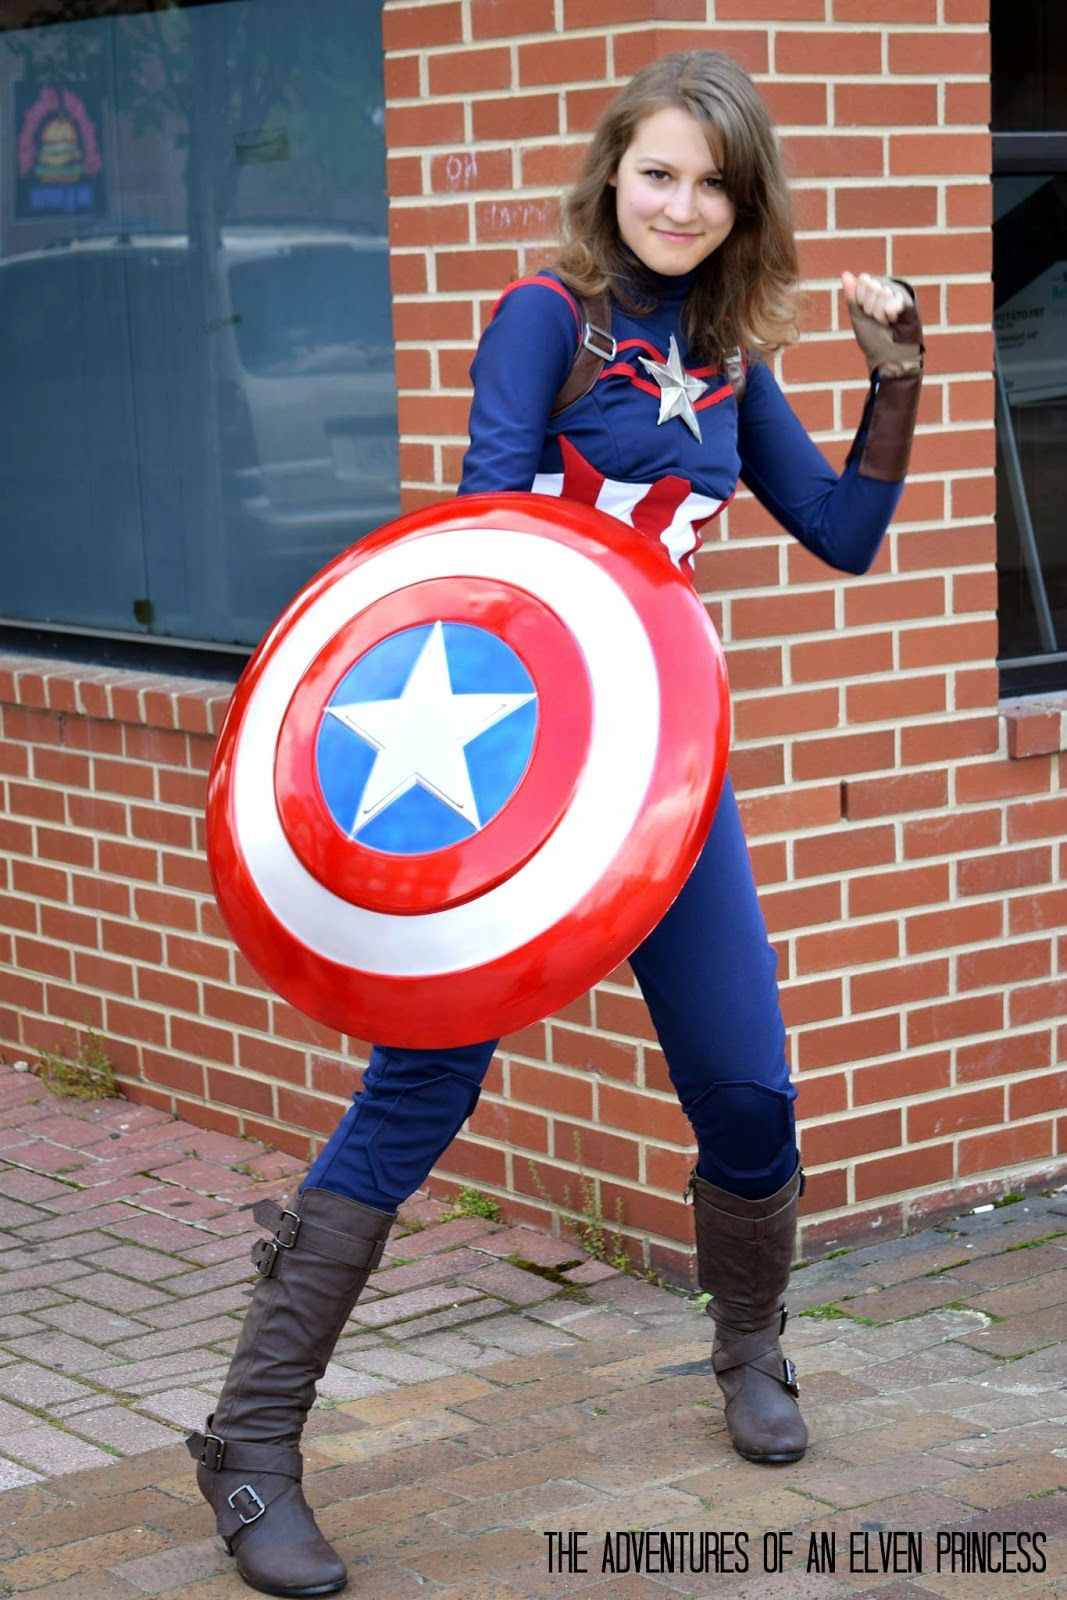 Best ideas about Captain America DIY Costume . Save or Pin The Adventures of An Elven Princess Captain America Now.